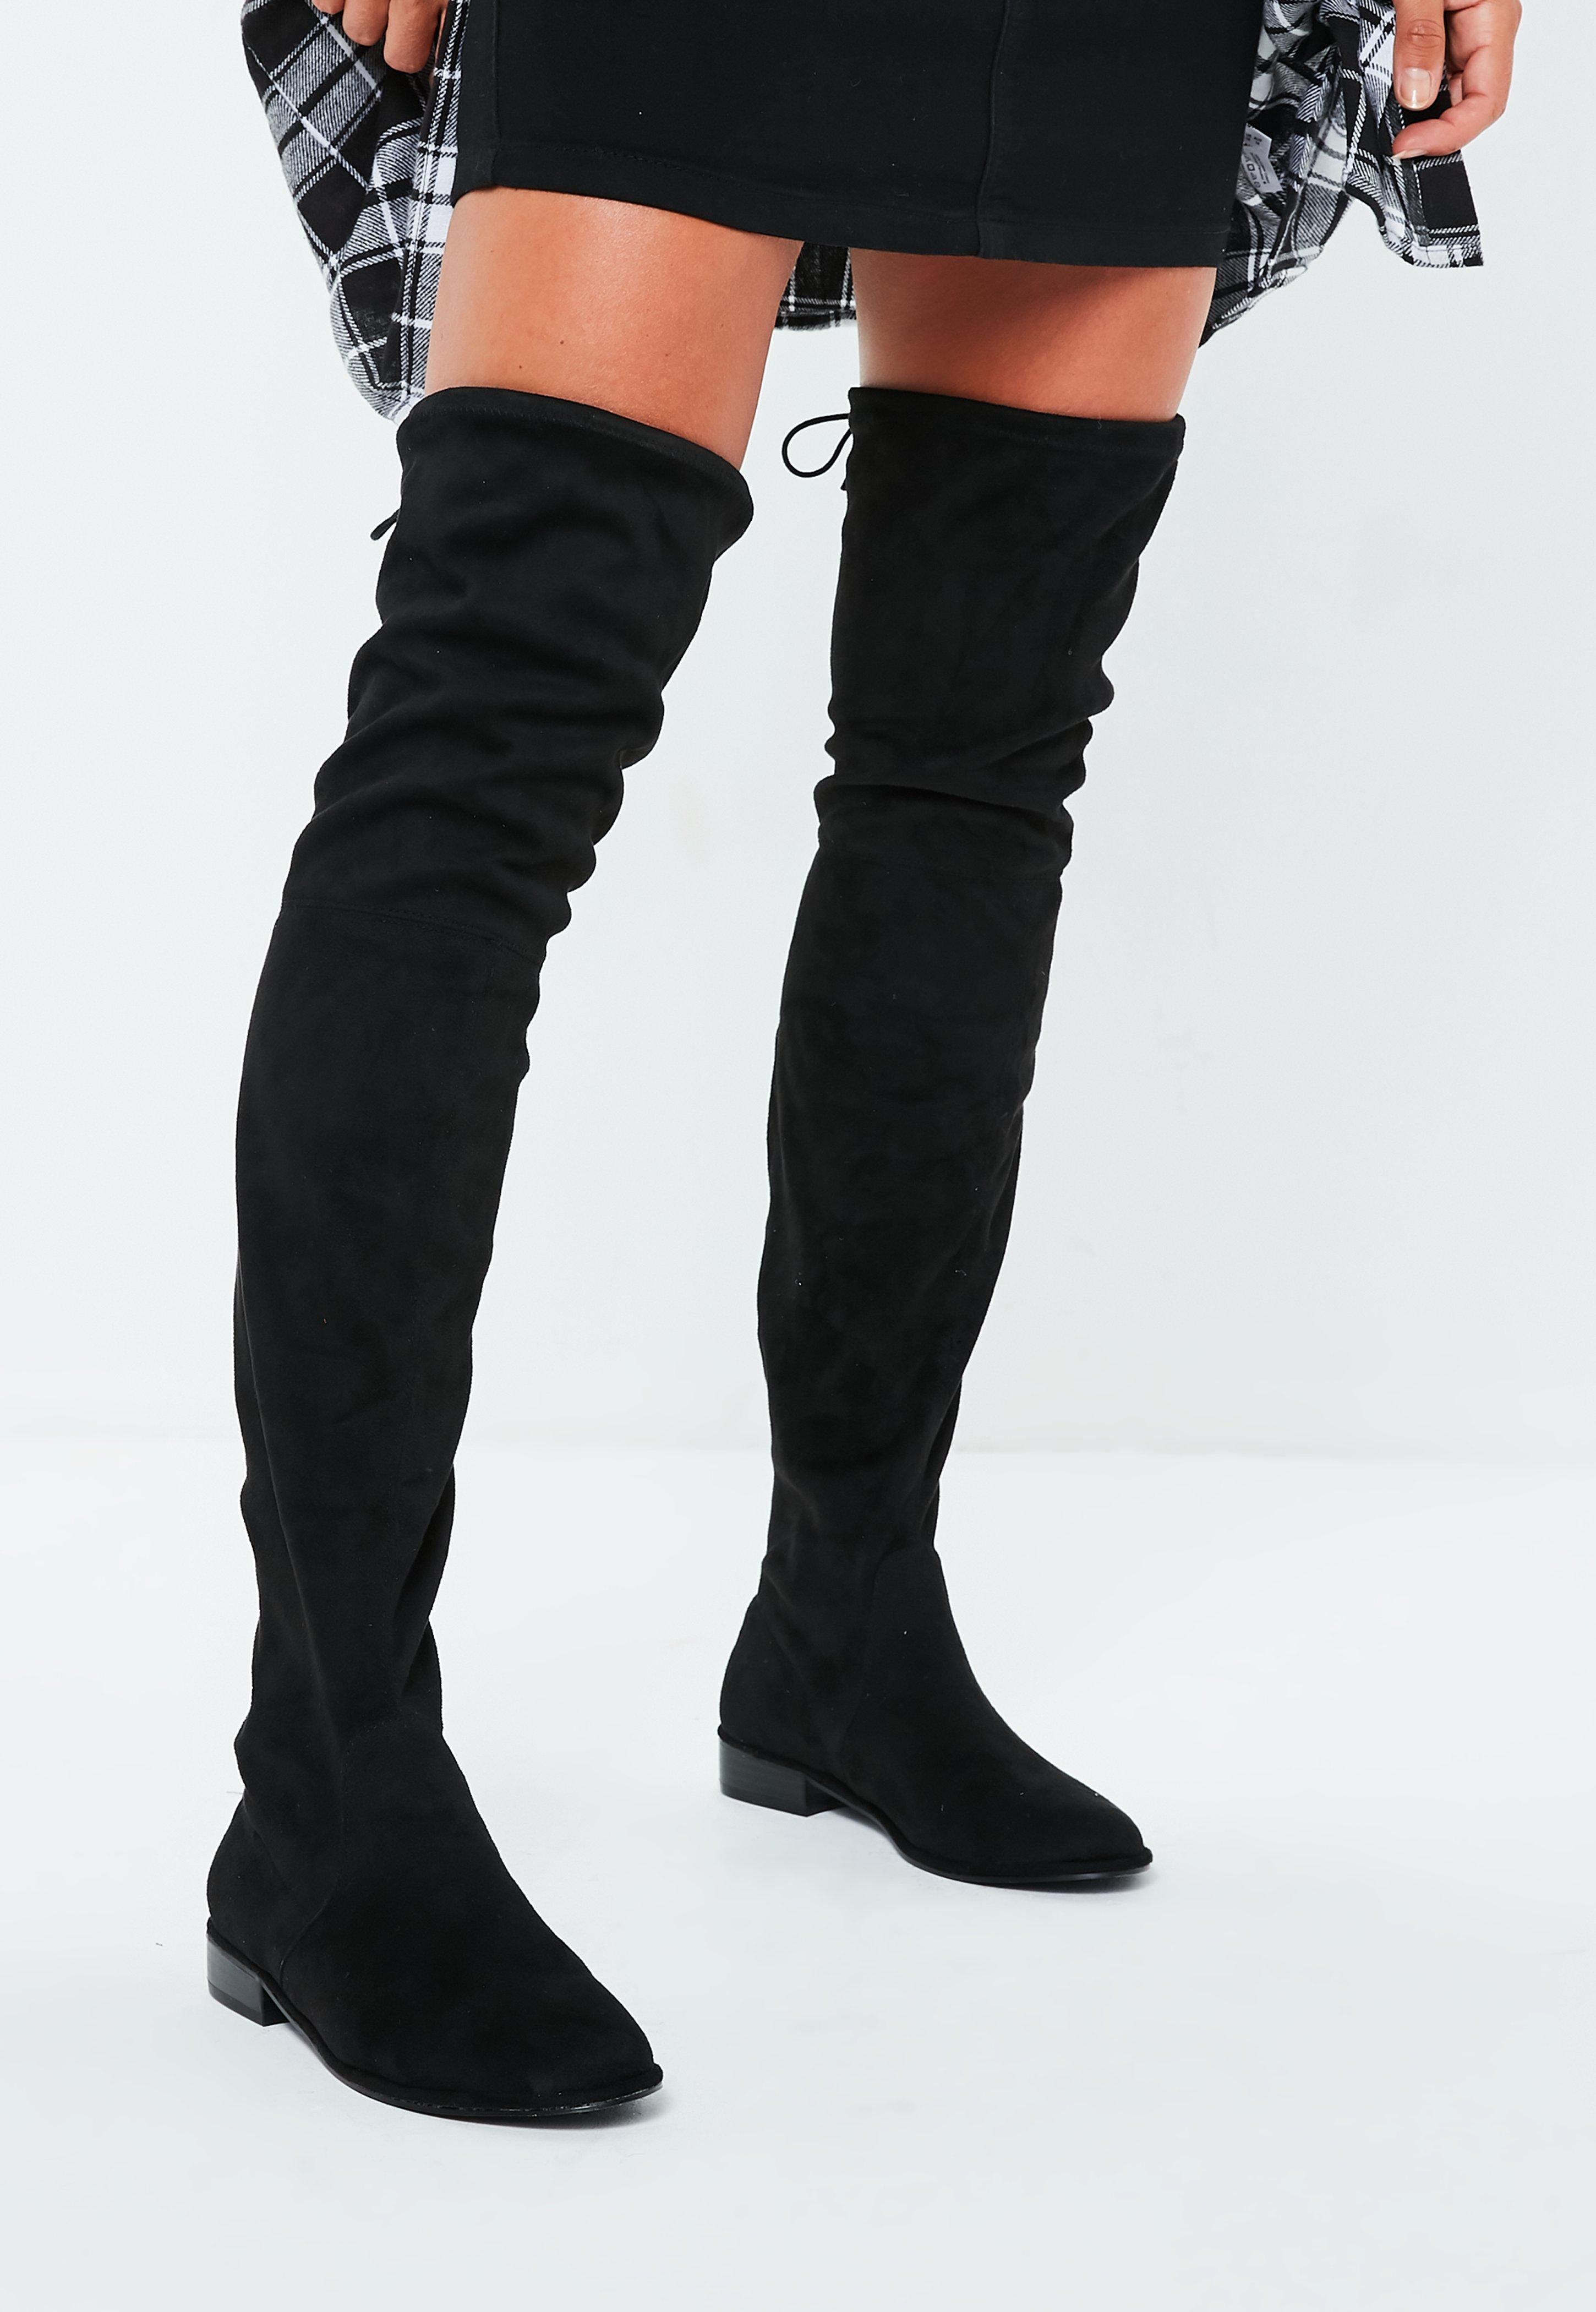 Knee high boot knee high boots, over the knee u0026 thigh high boots - missguided JIZIACZ